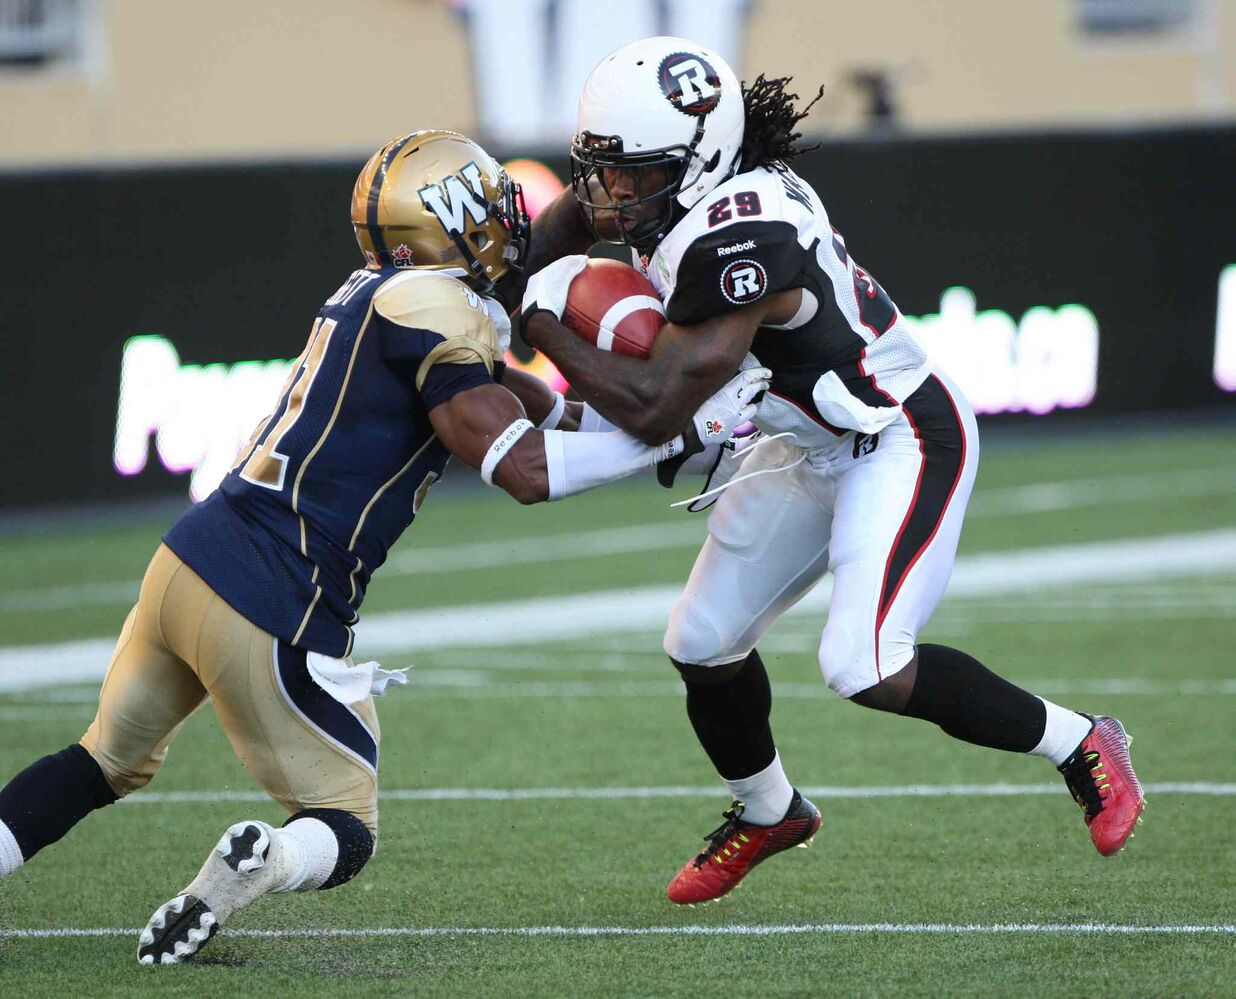 Winnipeg Blue Bombers Maurice Leggett ties it up with Ottawa Redblacks Chevon Walker during the first half of Thursday's game at Investors Group Field. (Joe Bryksa / Winnipeg Free Press)